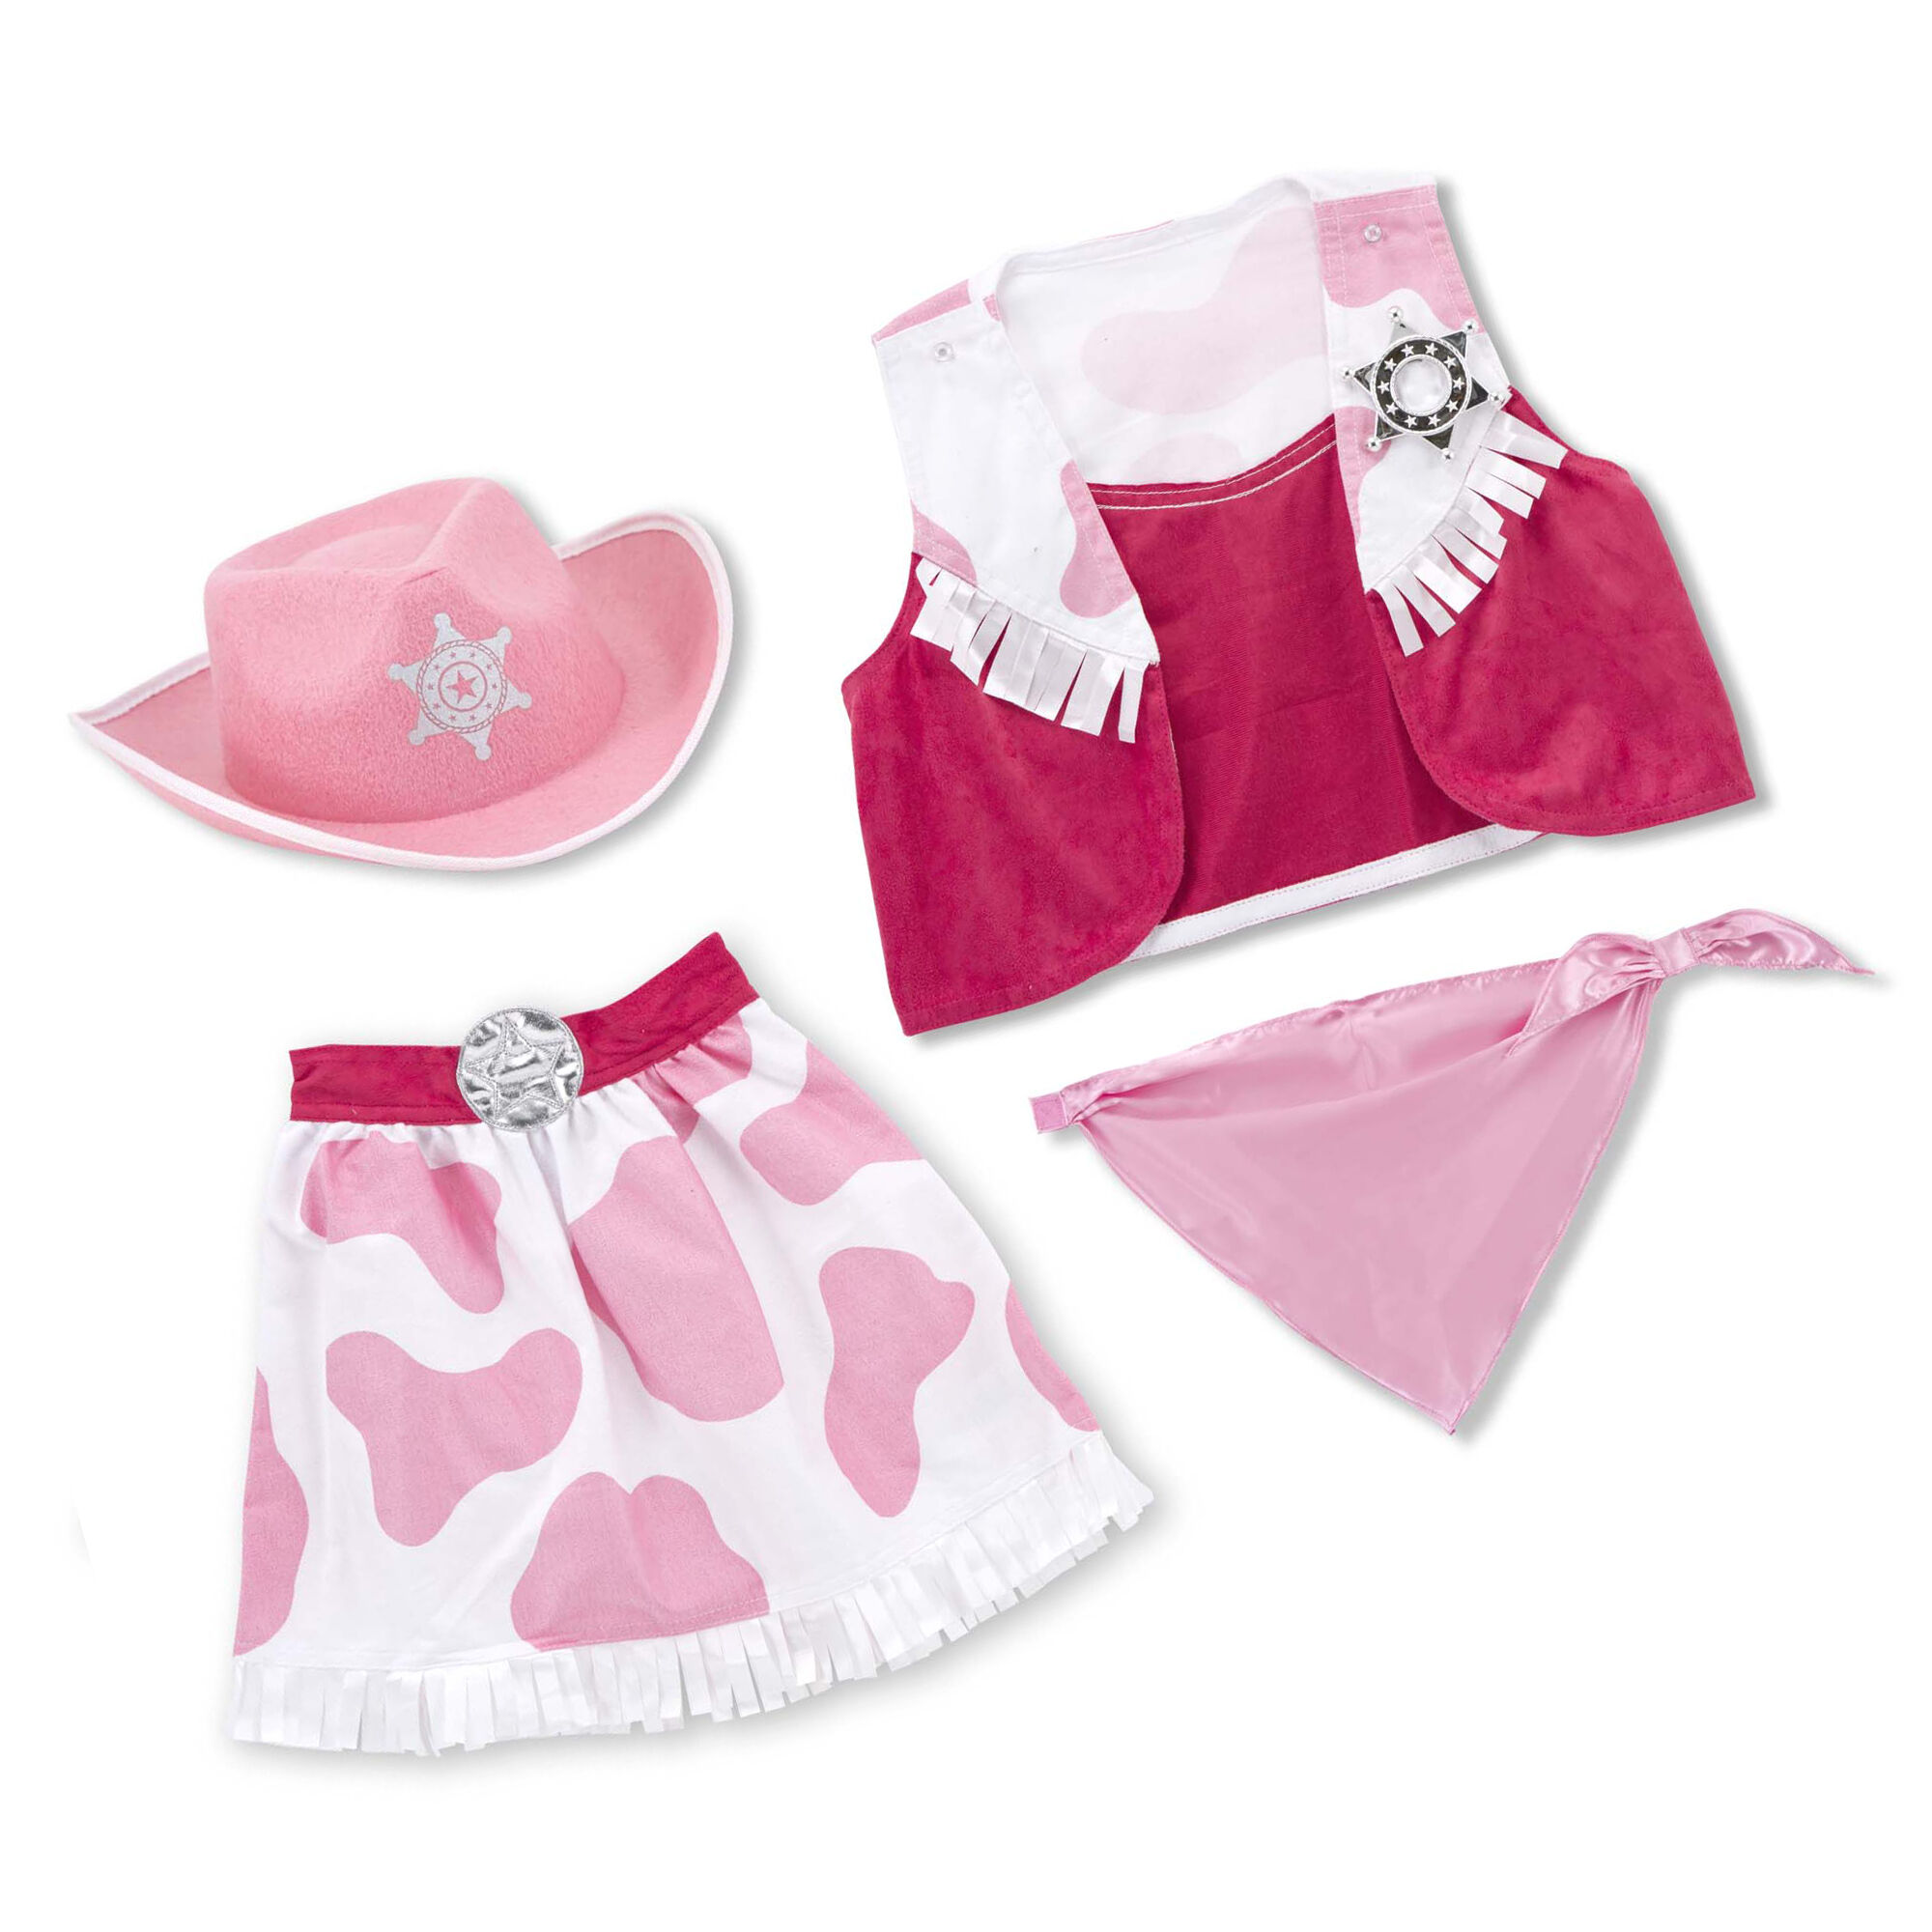 Cowgirl Role Play Costume Set  sc 1 st  Melissa u0026 Doug & Cowgirl Role Play Costume Set | Melissa u0026 Doug